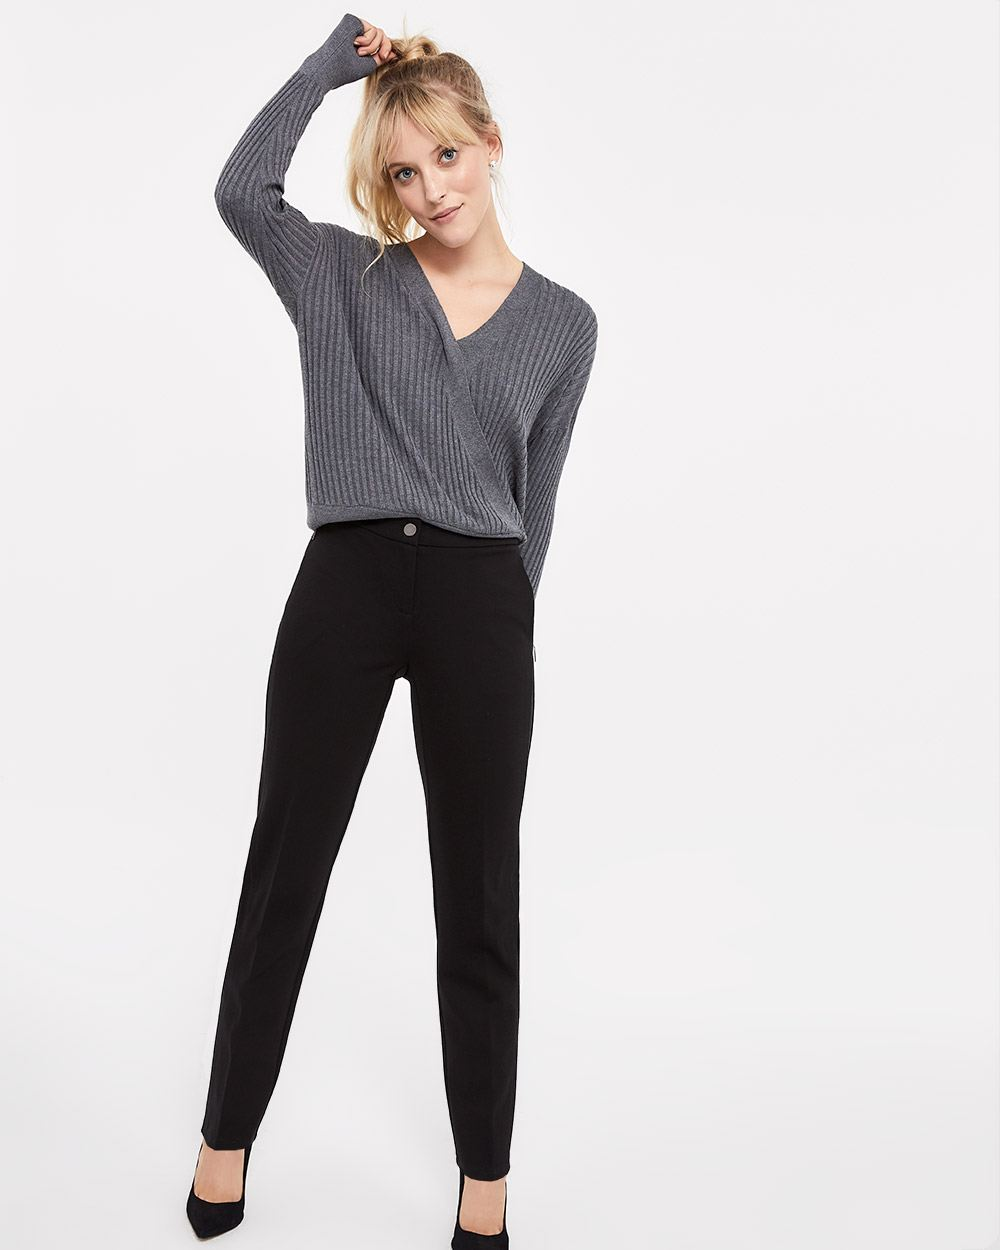 The Petite Modern Stretch Straight Leg Pants